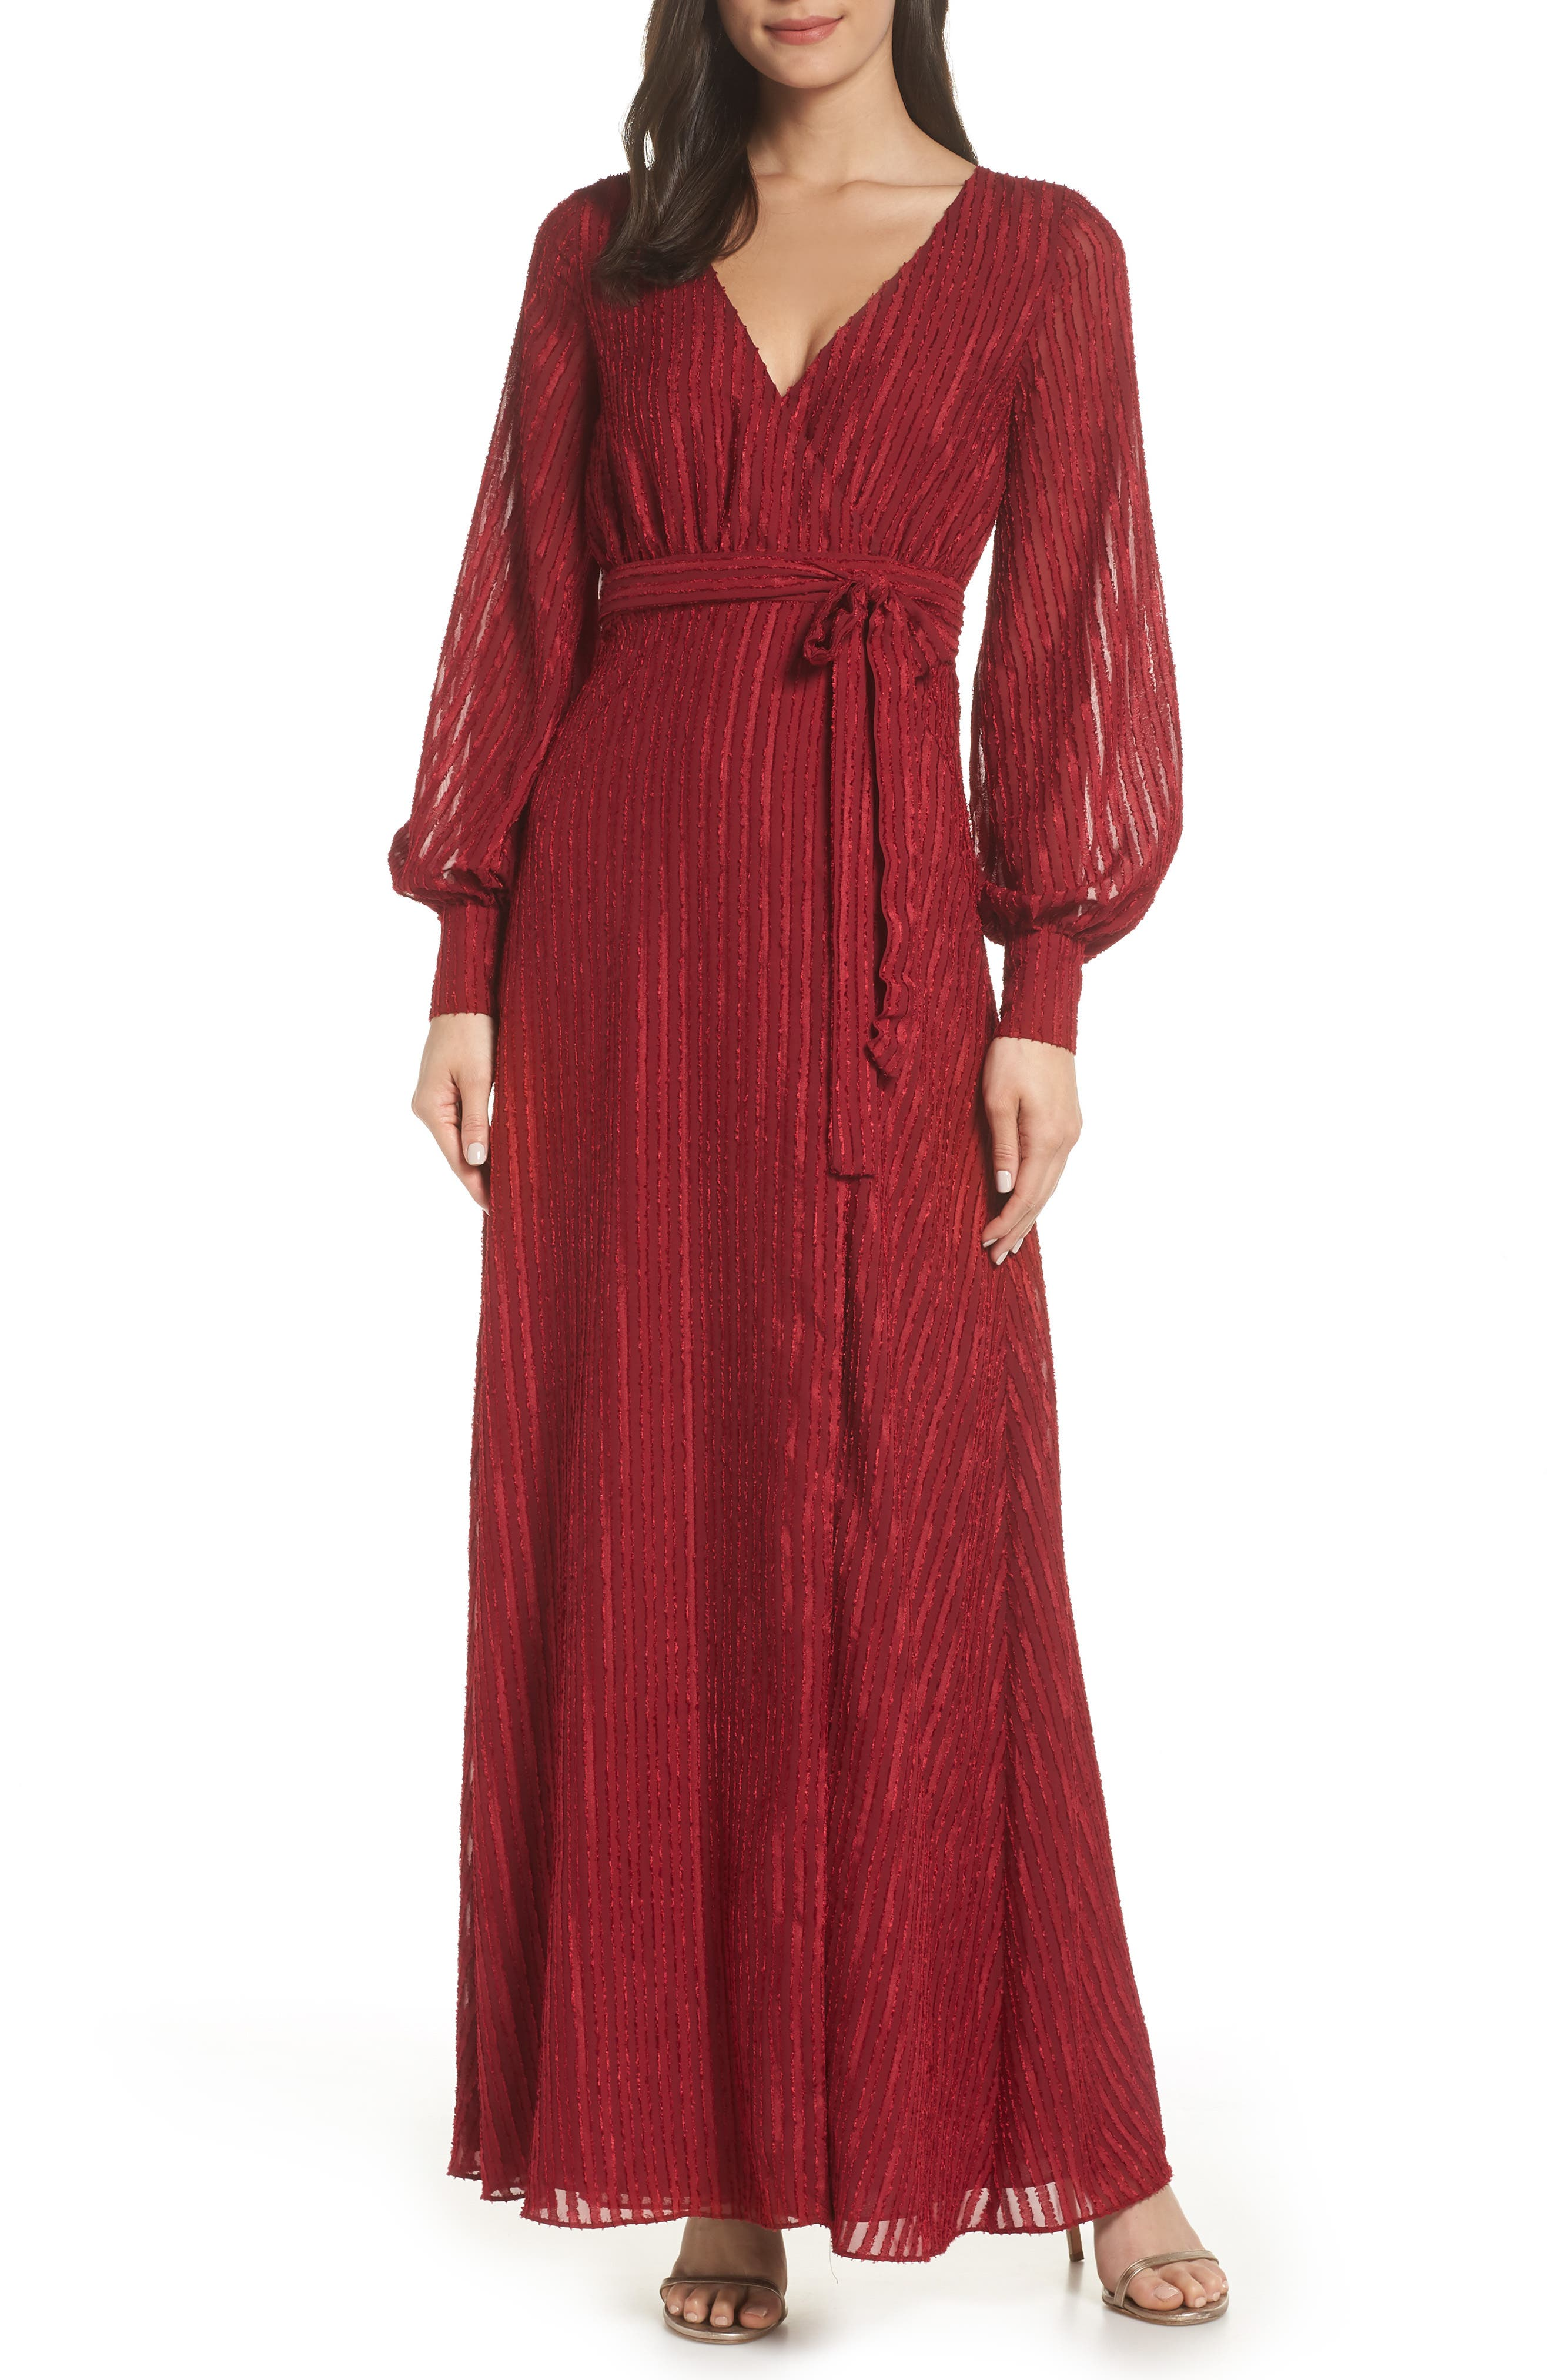 FAME AND PARTNERS The Rachel Wrap Gown in Burgundy